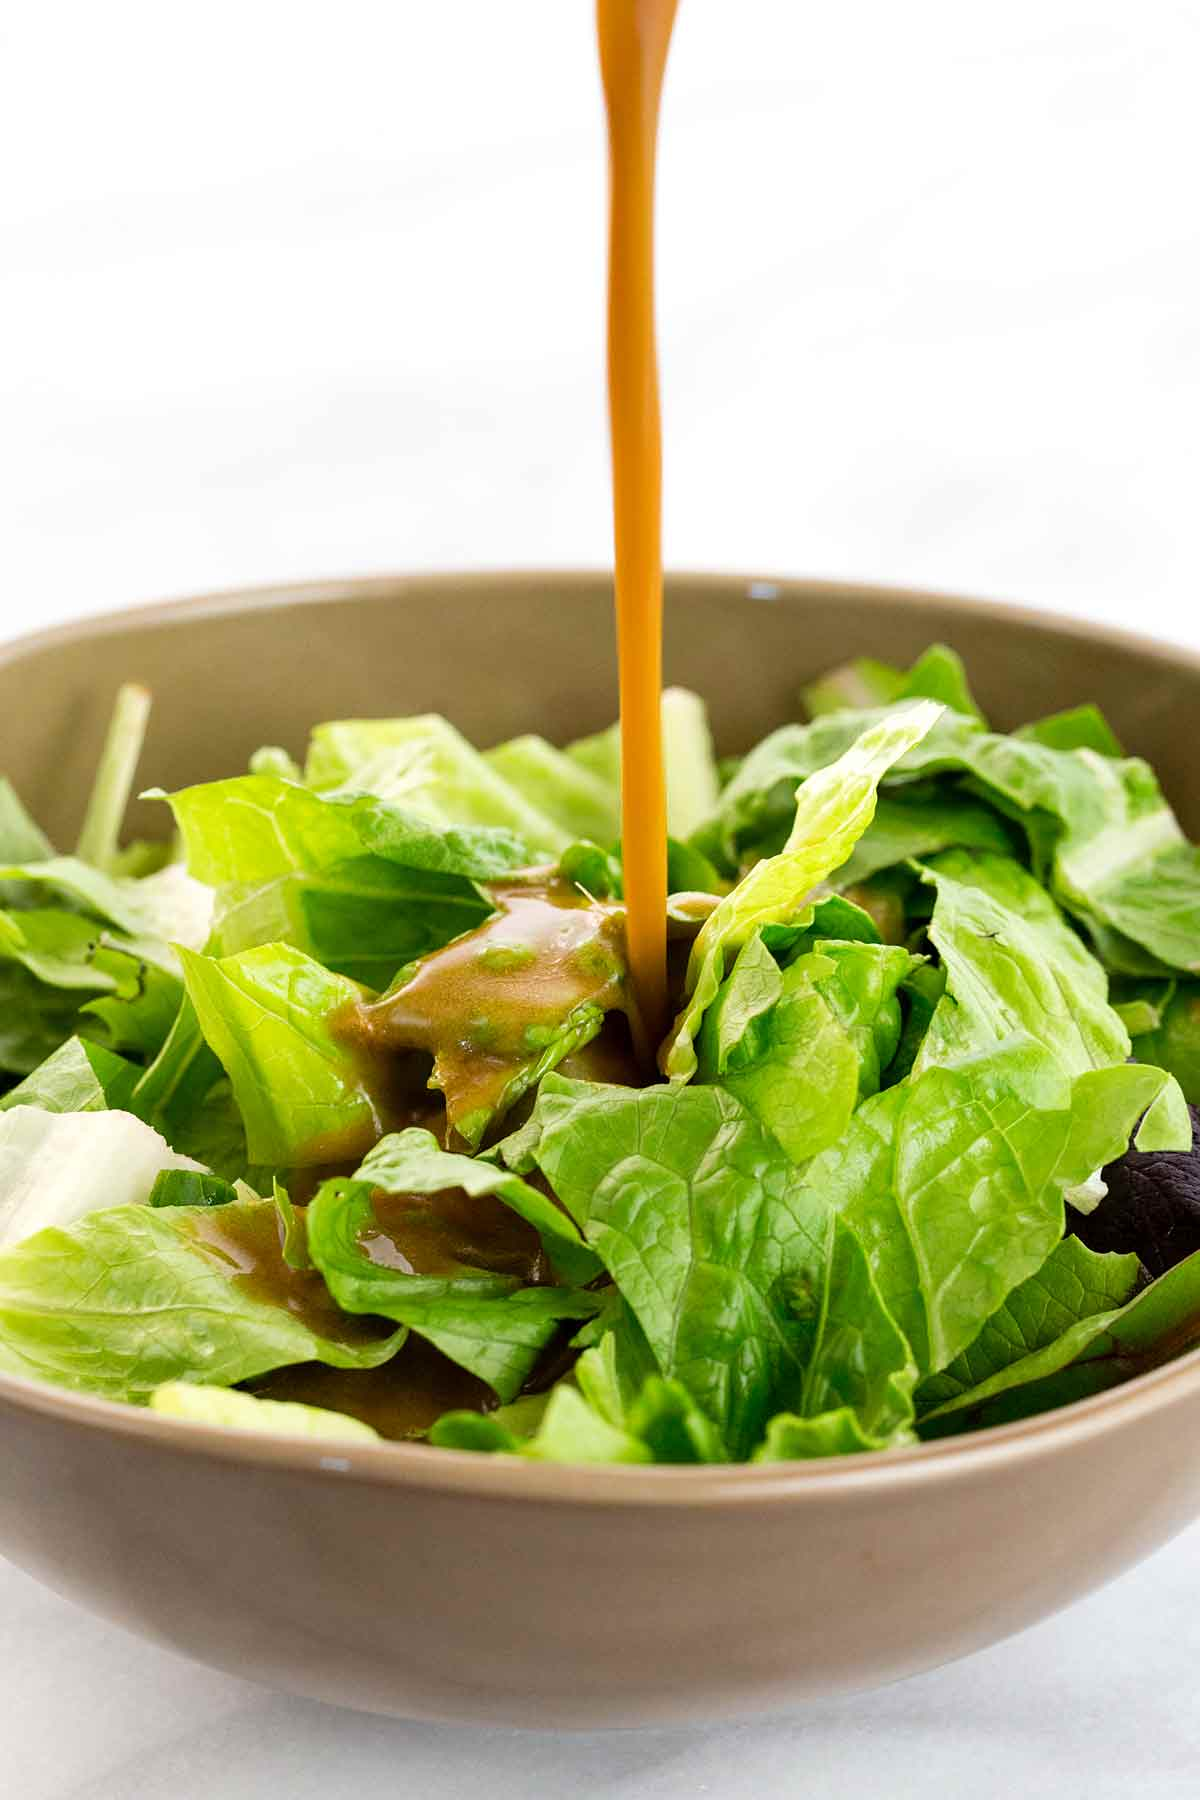 Pouring dressing onto a green salad